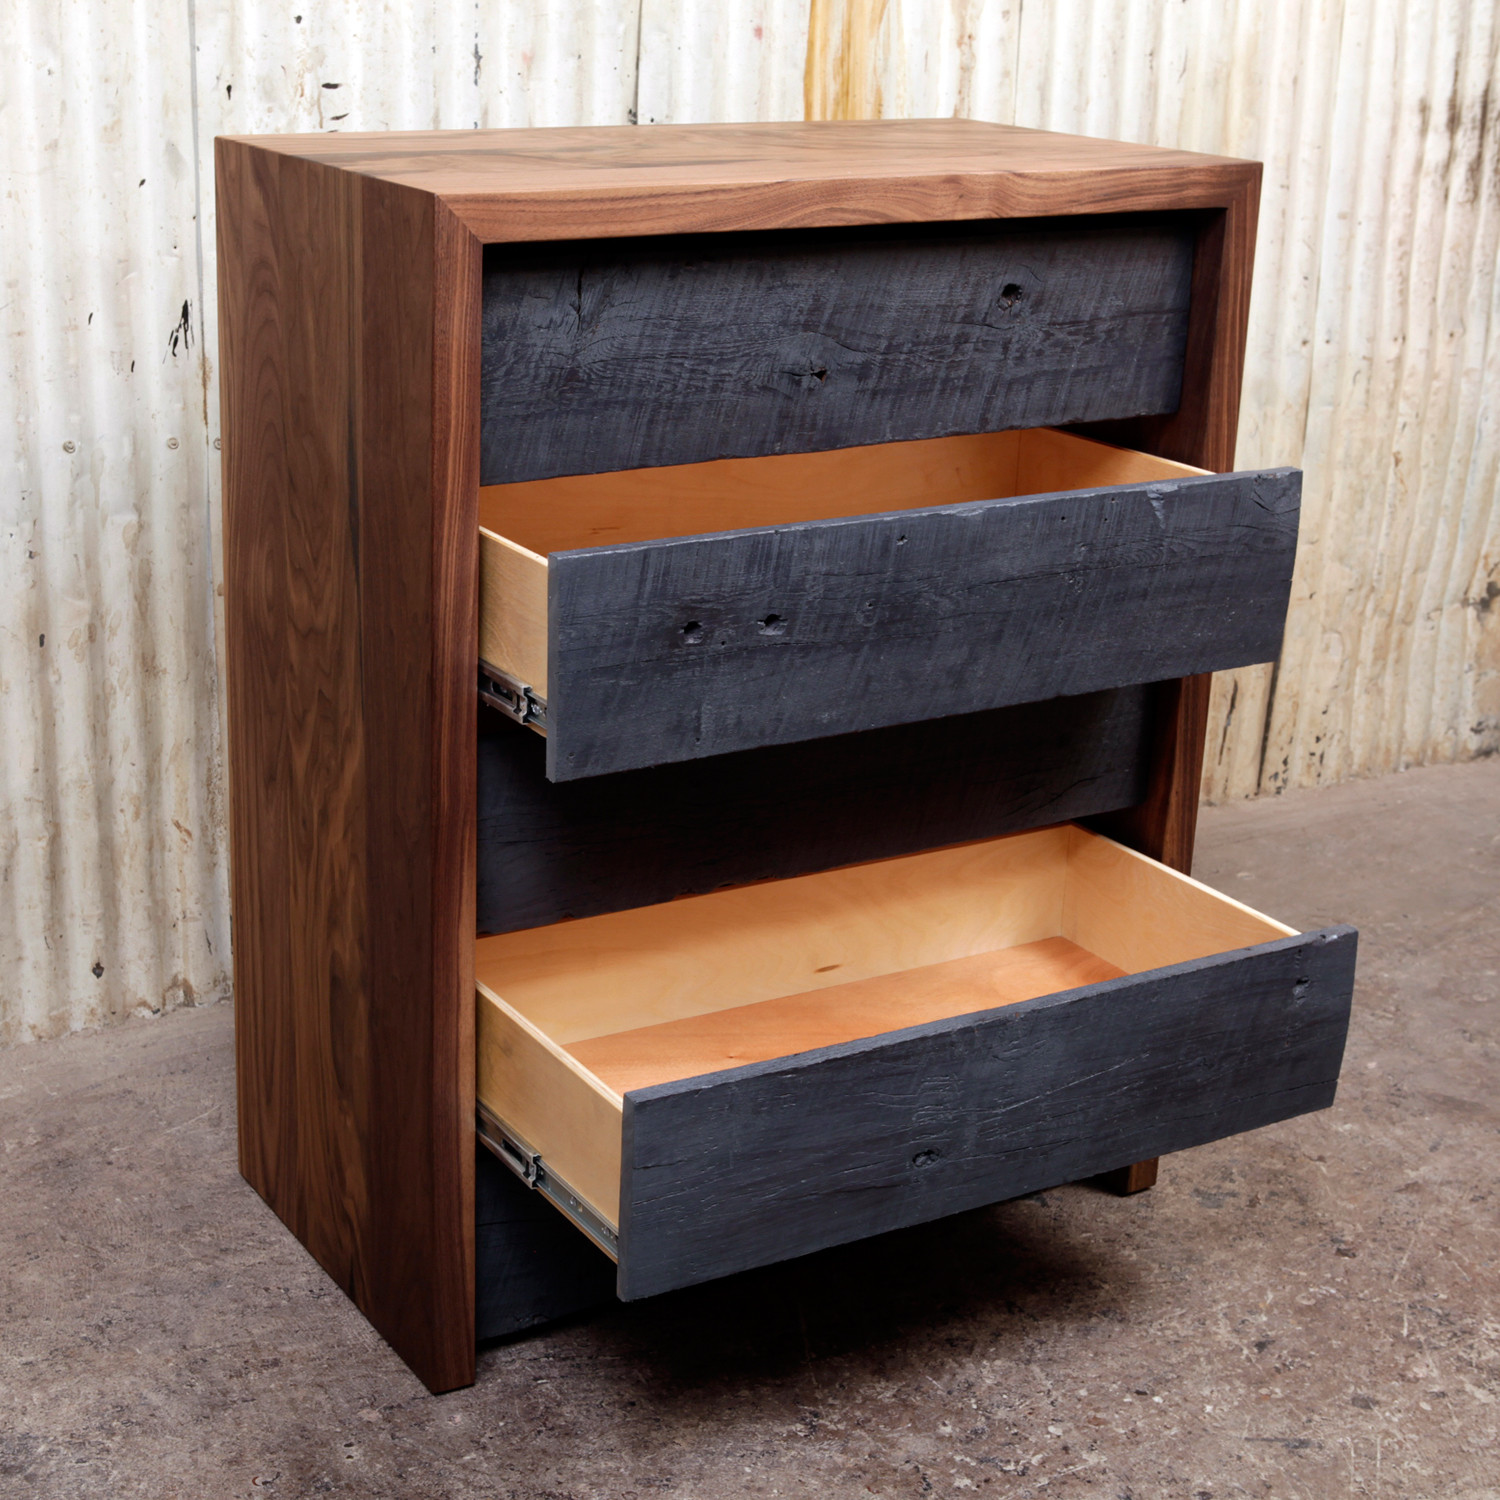 Reclaimed Wood Chest of Drawers - Reclaimed Wood Chest Of Drawers - ARTLESS - Touch Of Modern